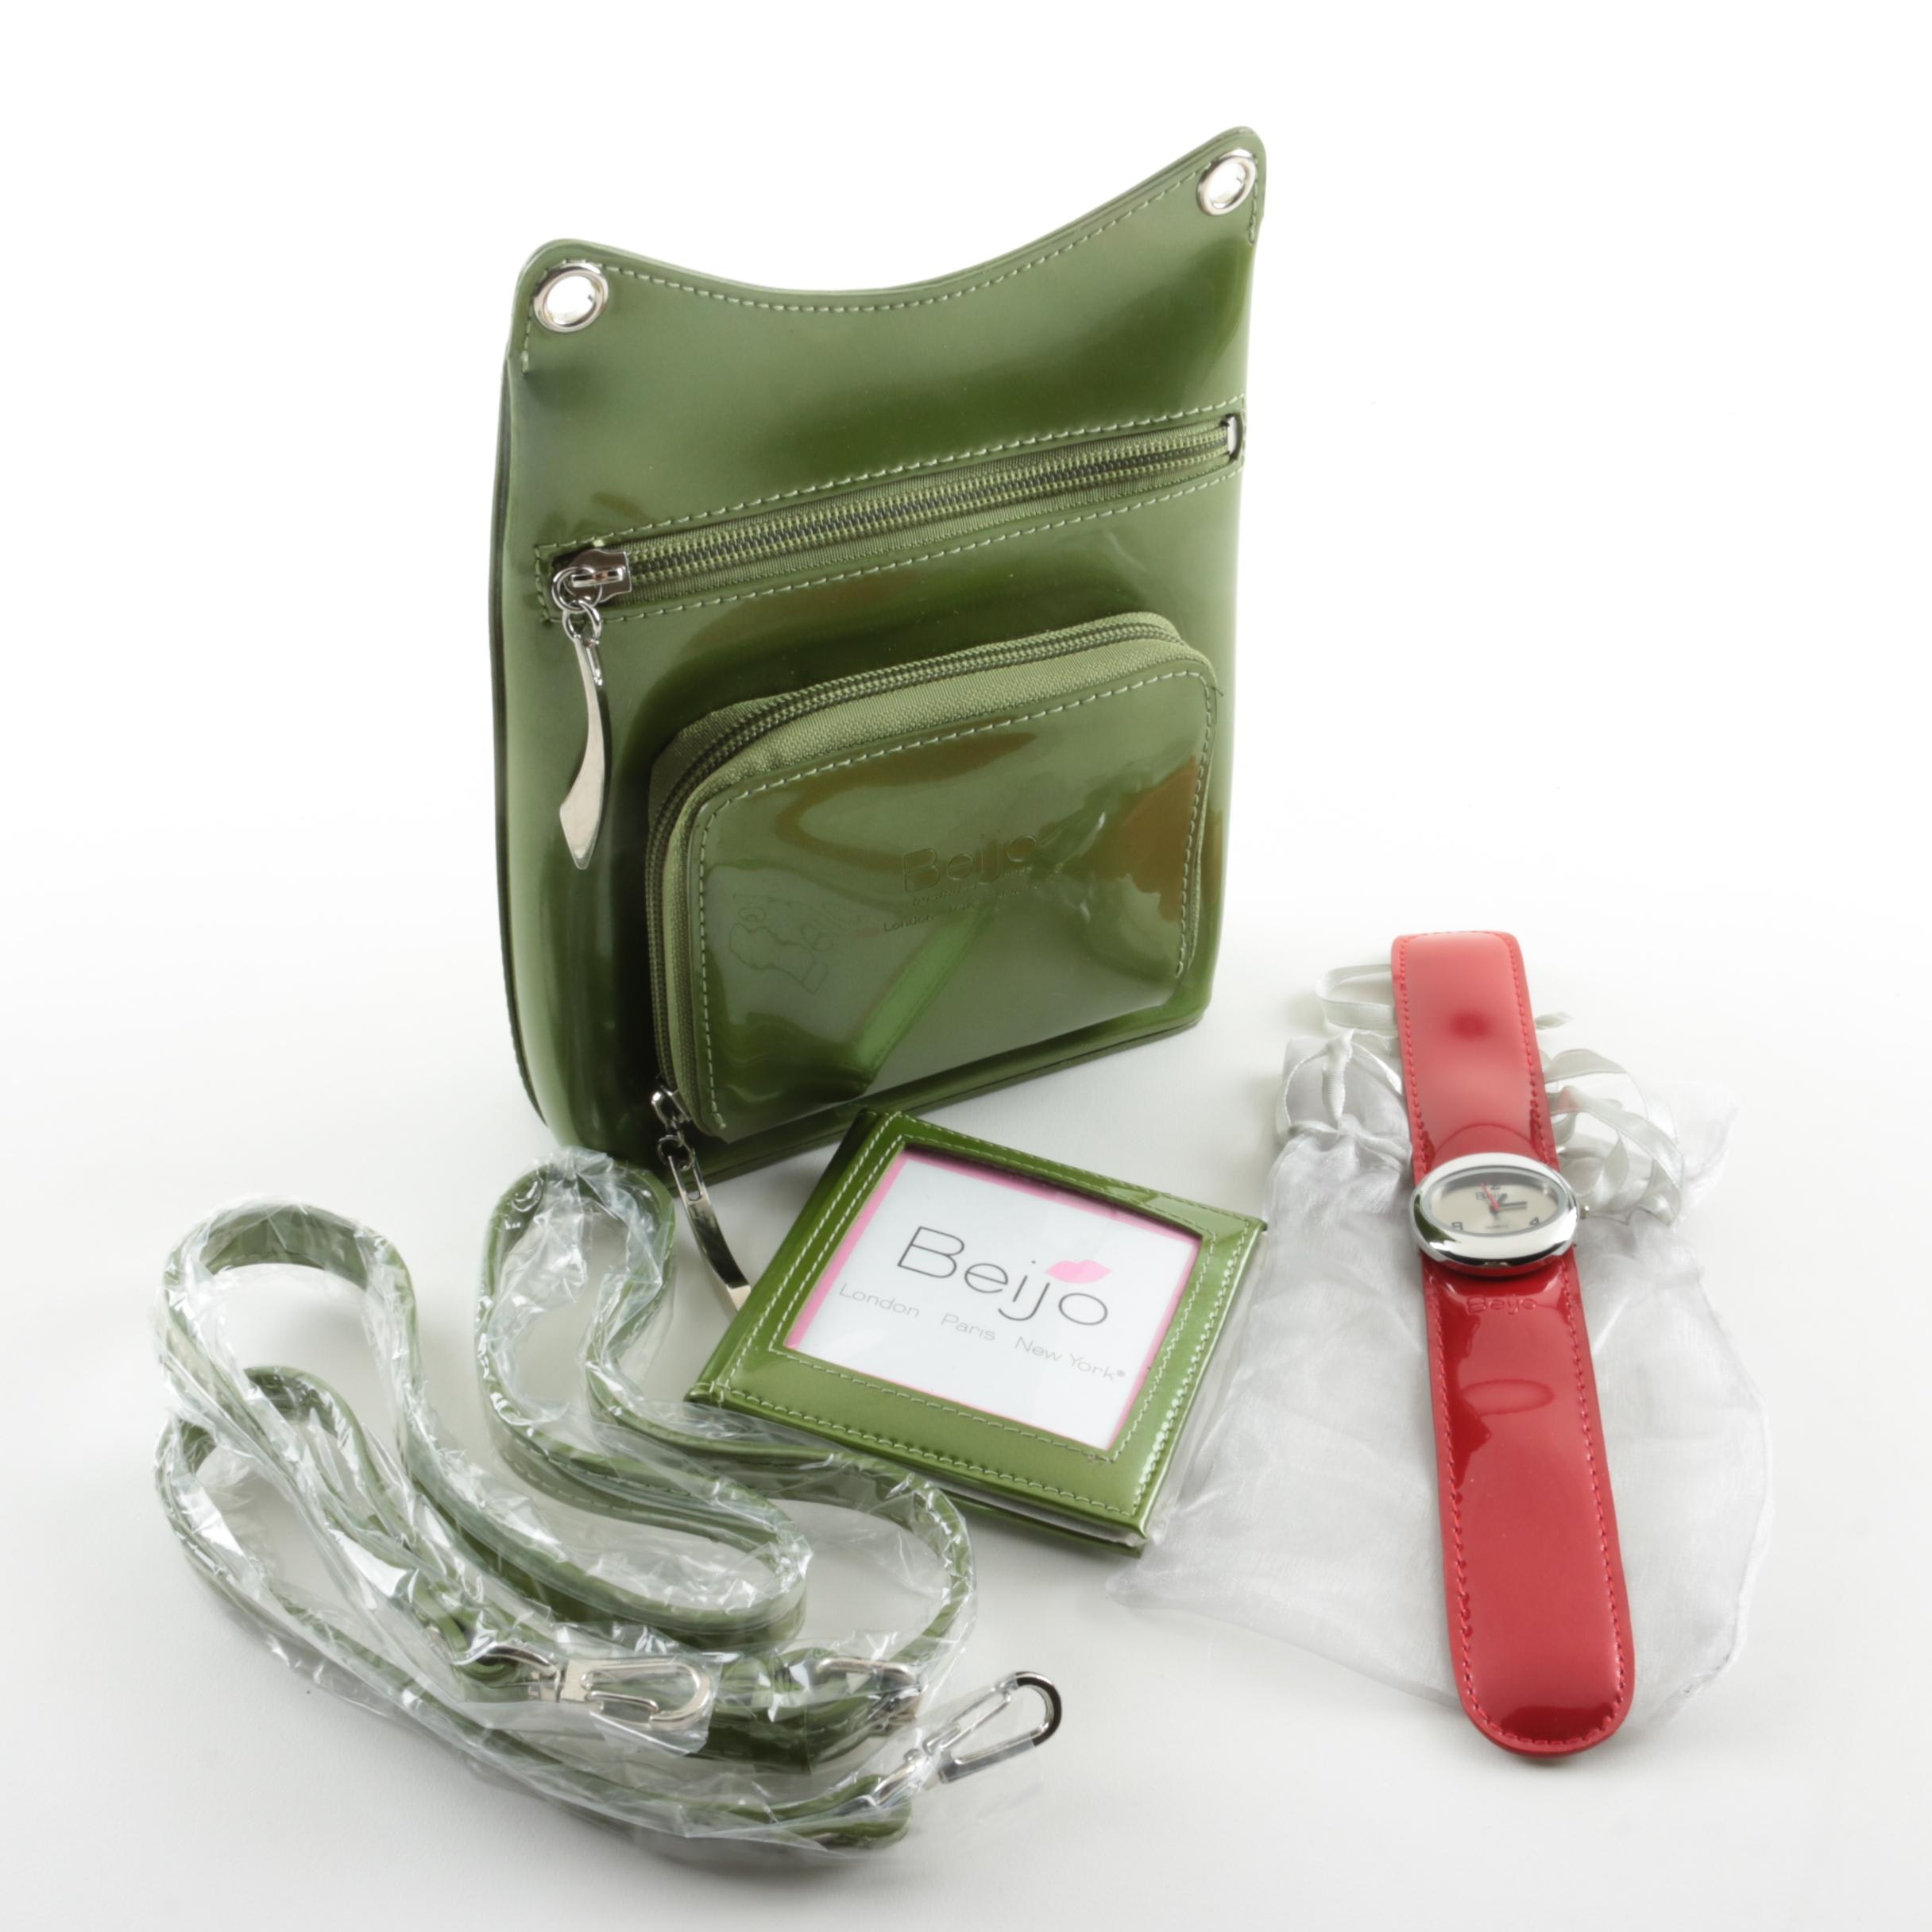 Beijo Green Crossbody Handbag and More